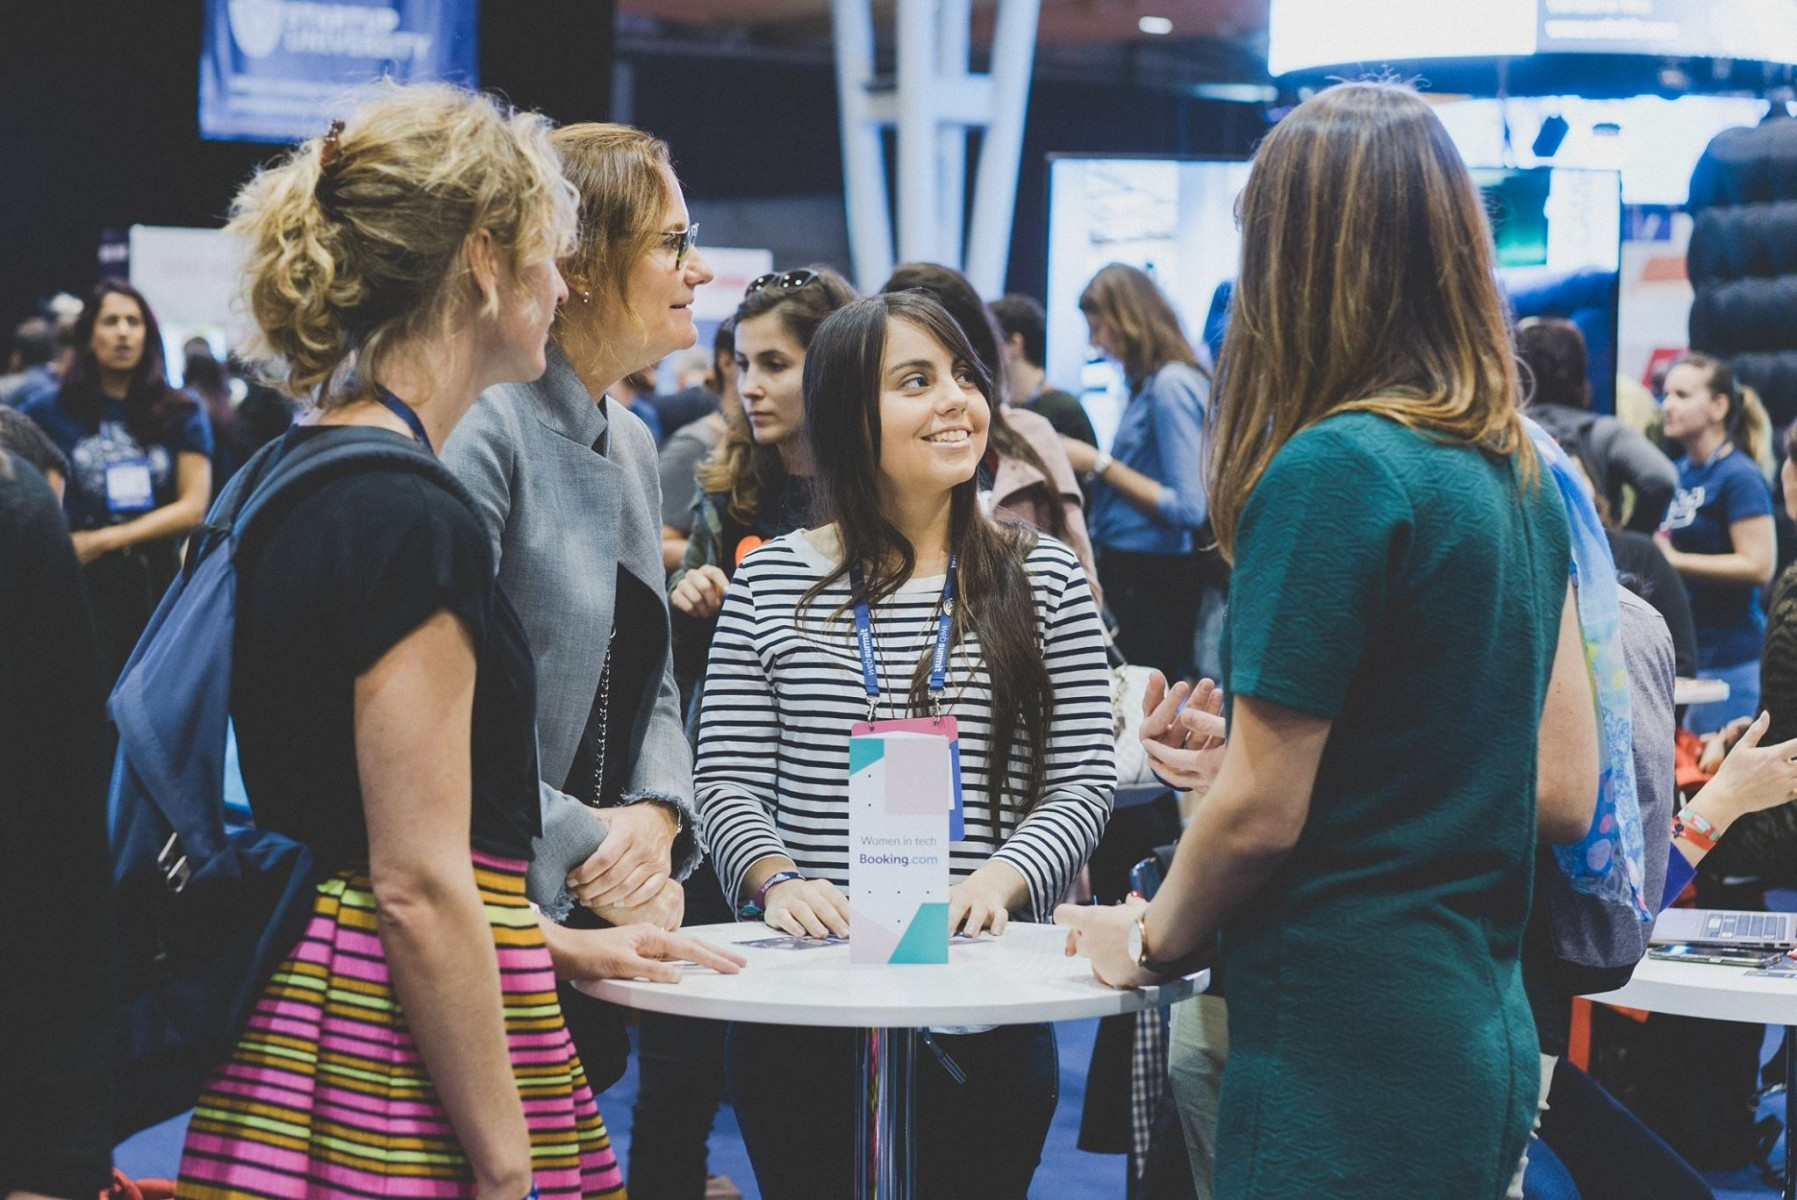 womenintech mentor programat websummit4